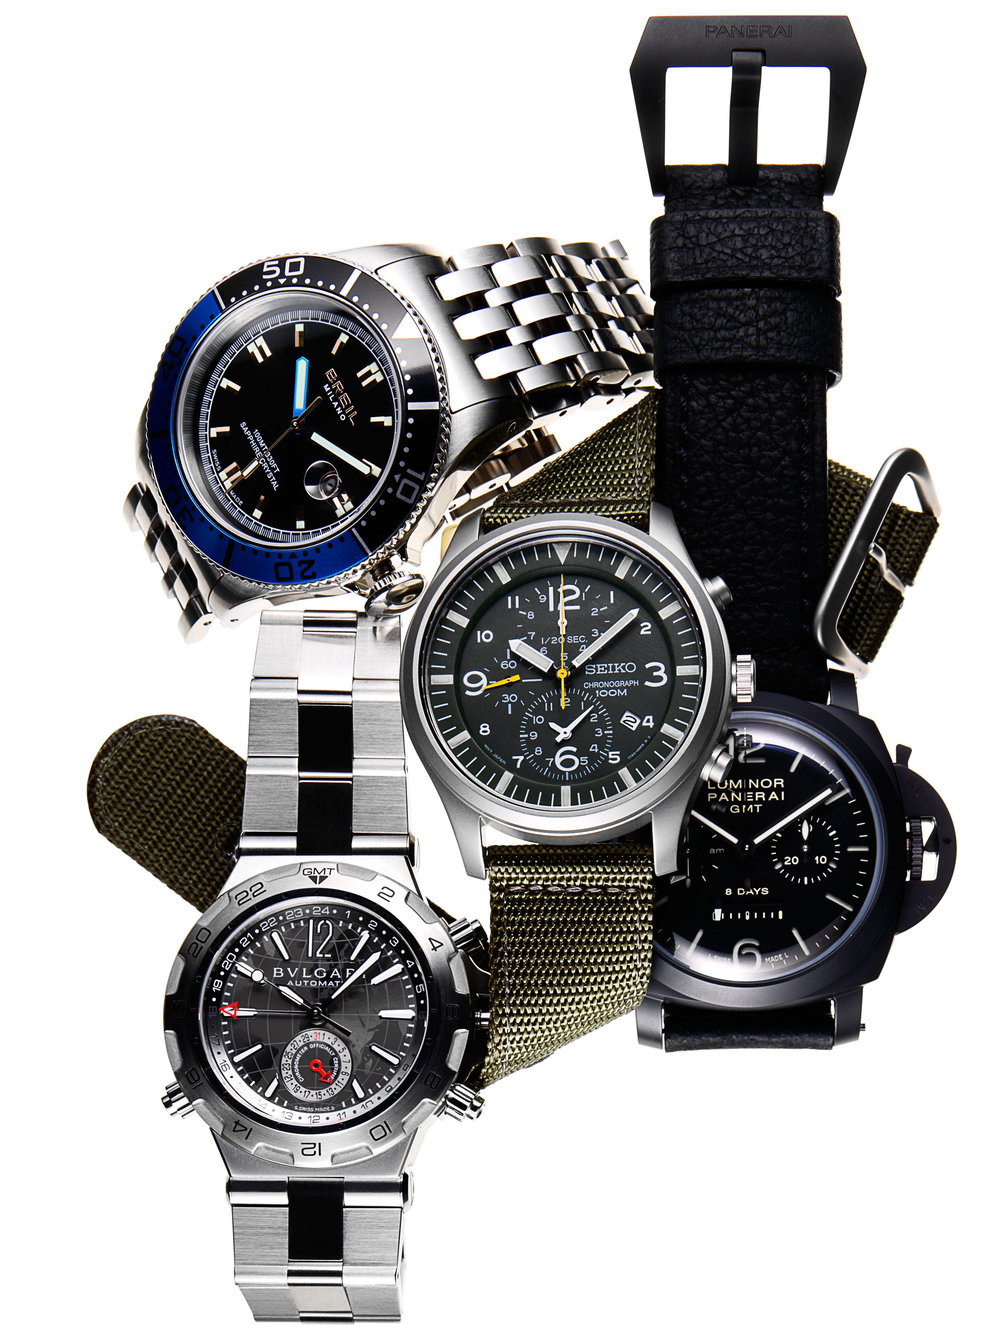 watches_051_RS.jpg